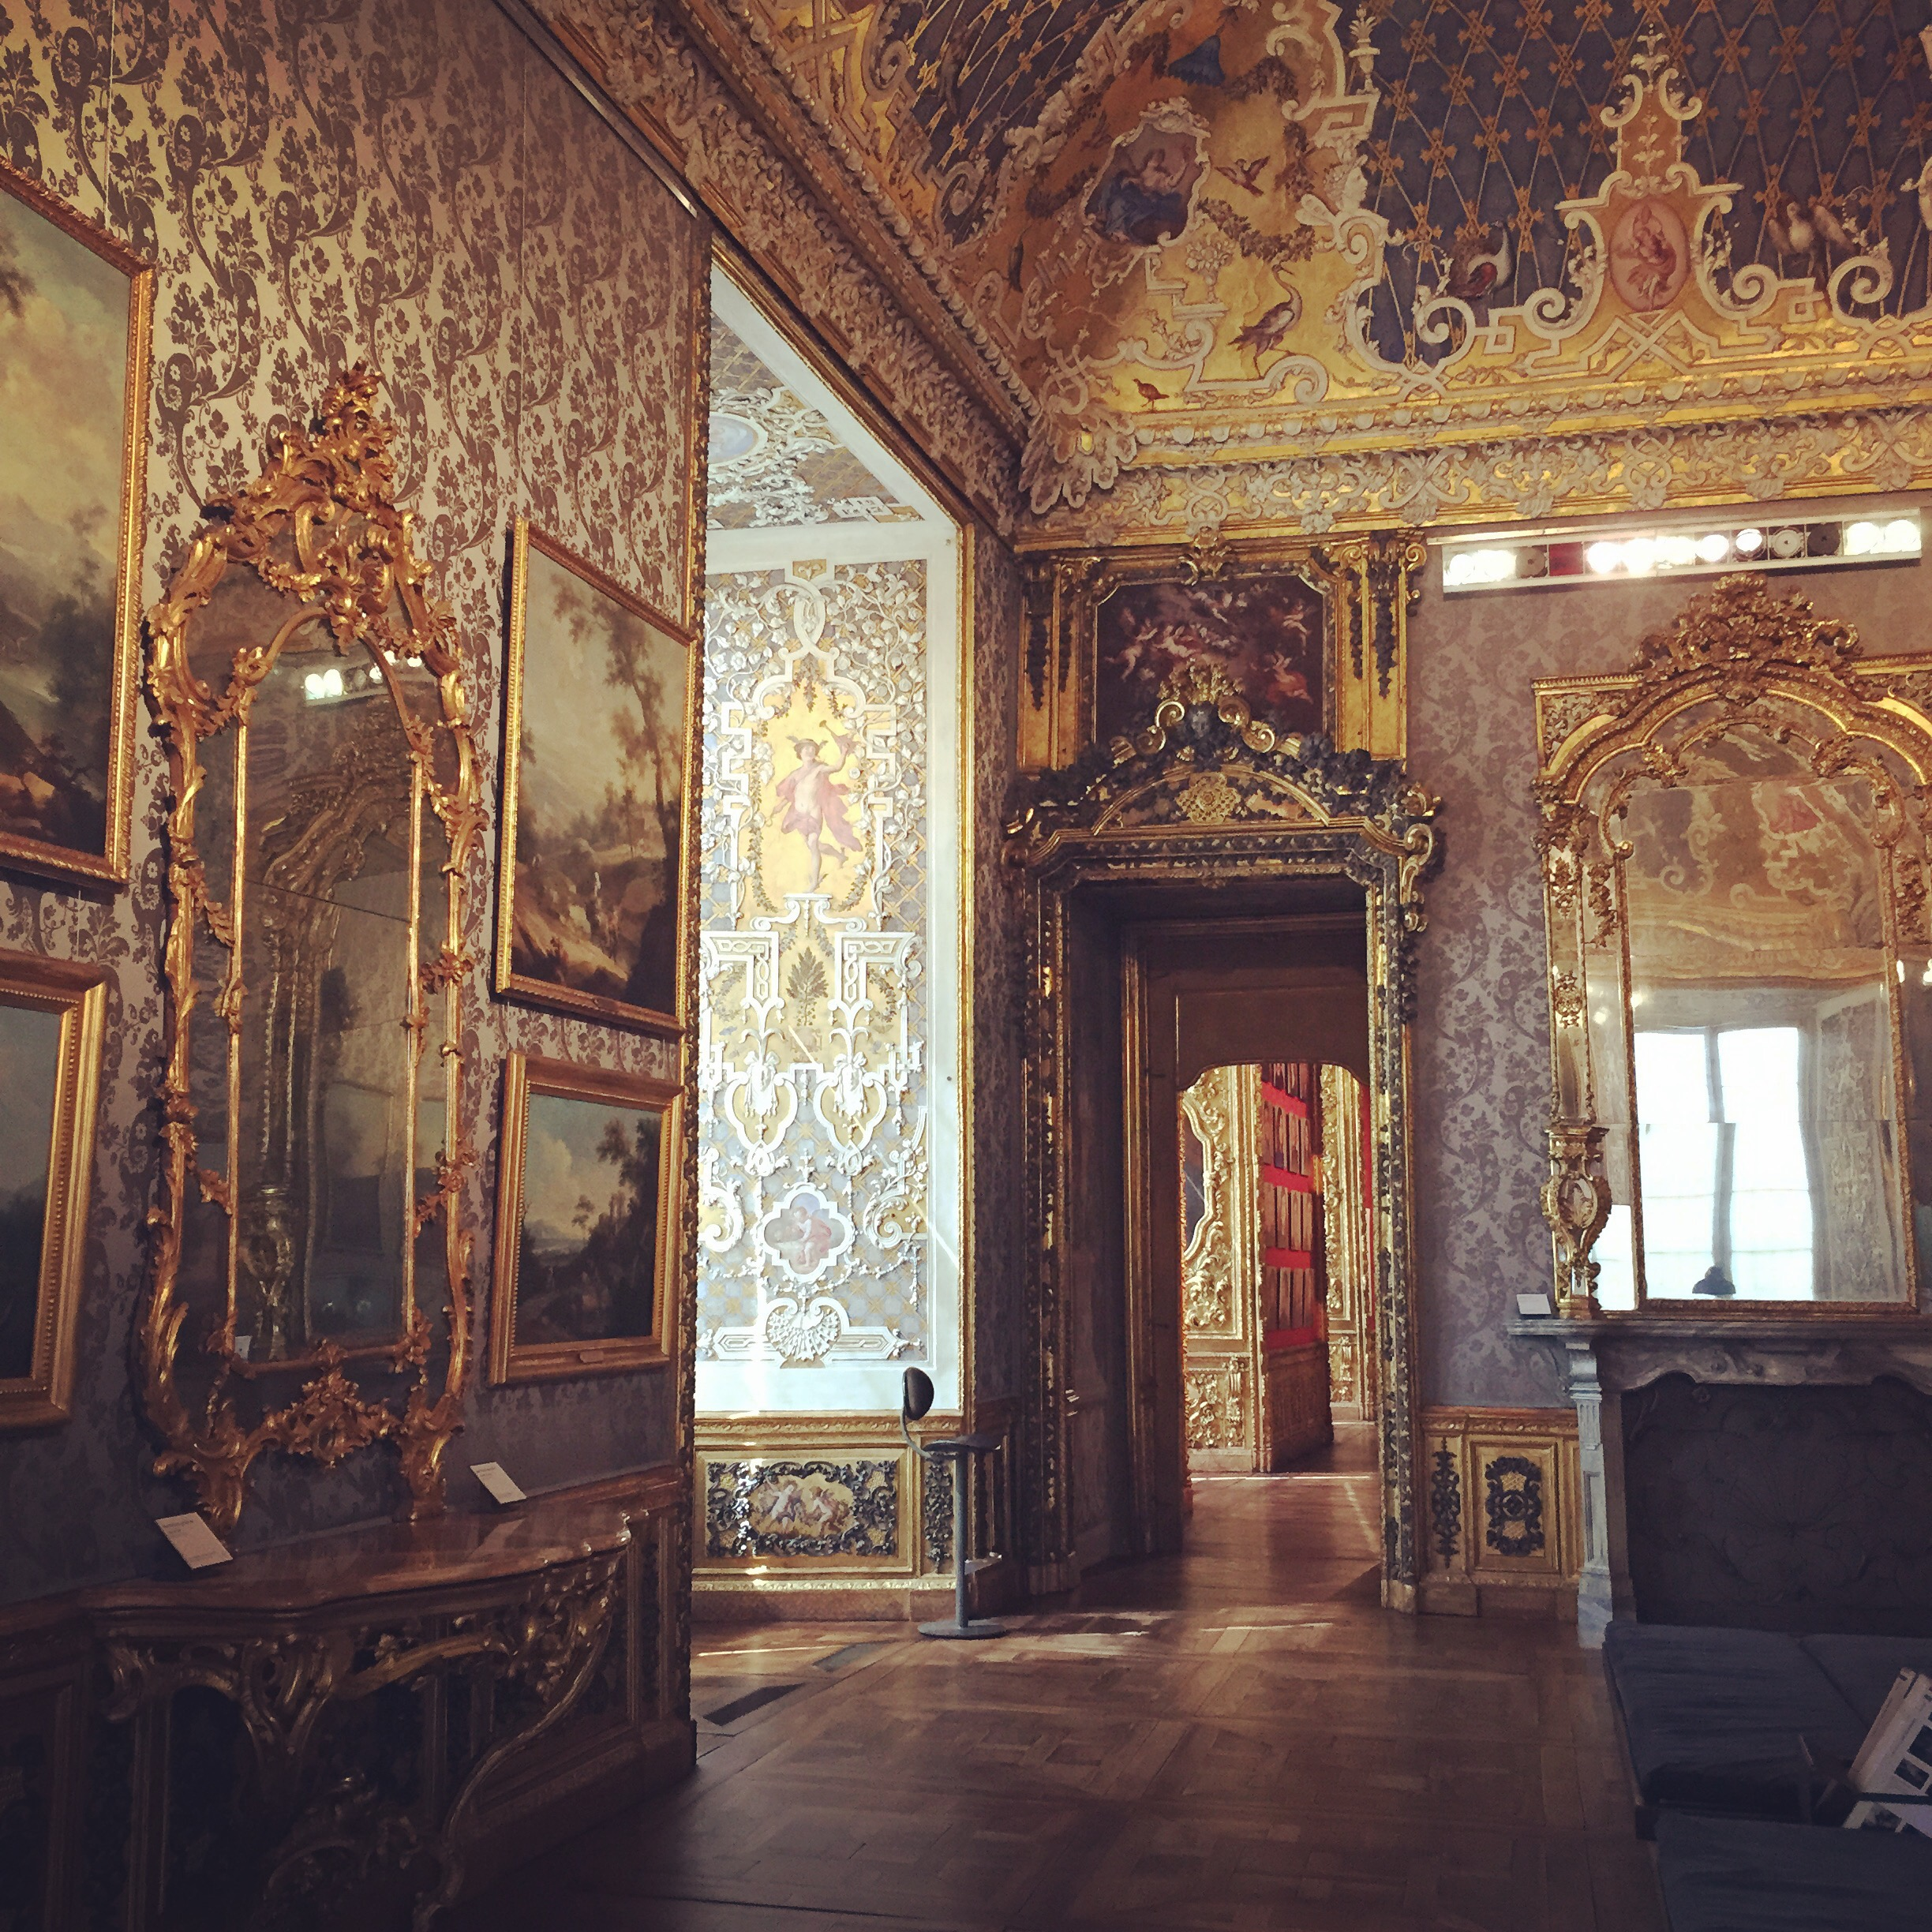 Palazzo Madama in Torino (the first palace of the Italian kingdom) will blow you away with intricate golden touches that seem too pretty to be real